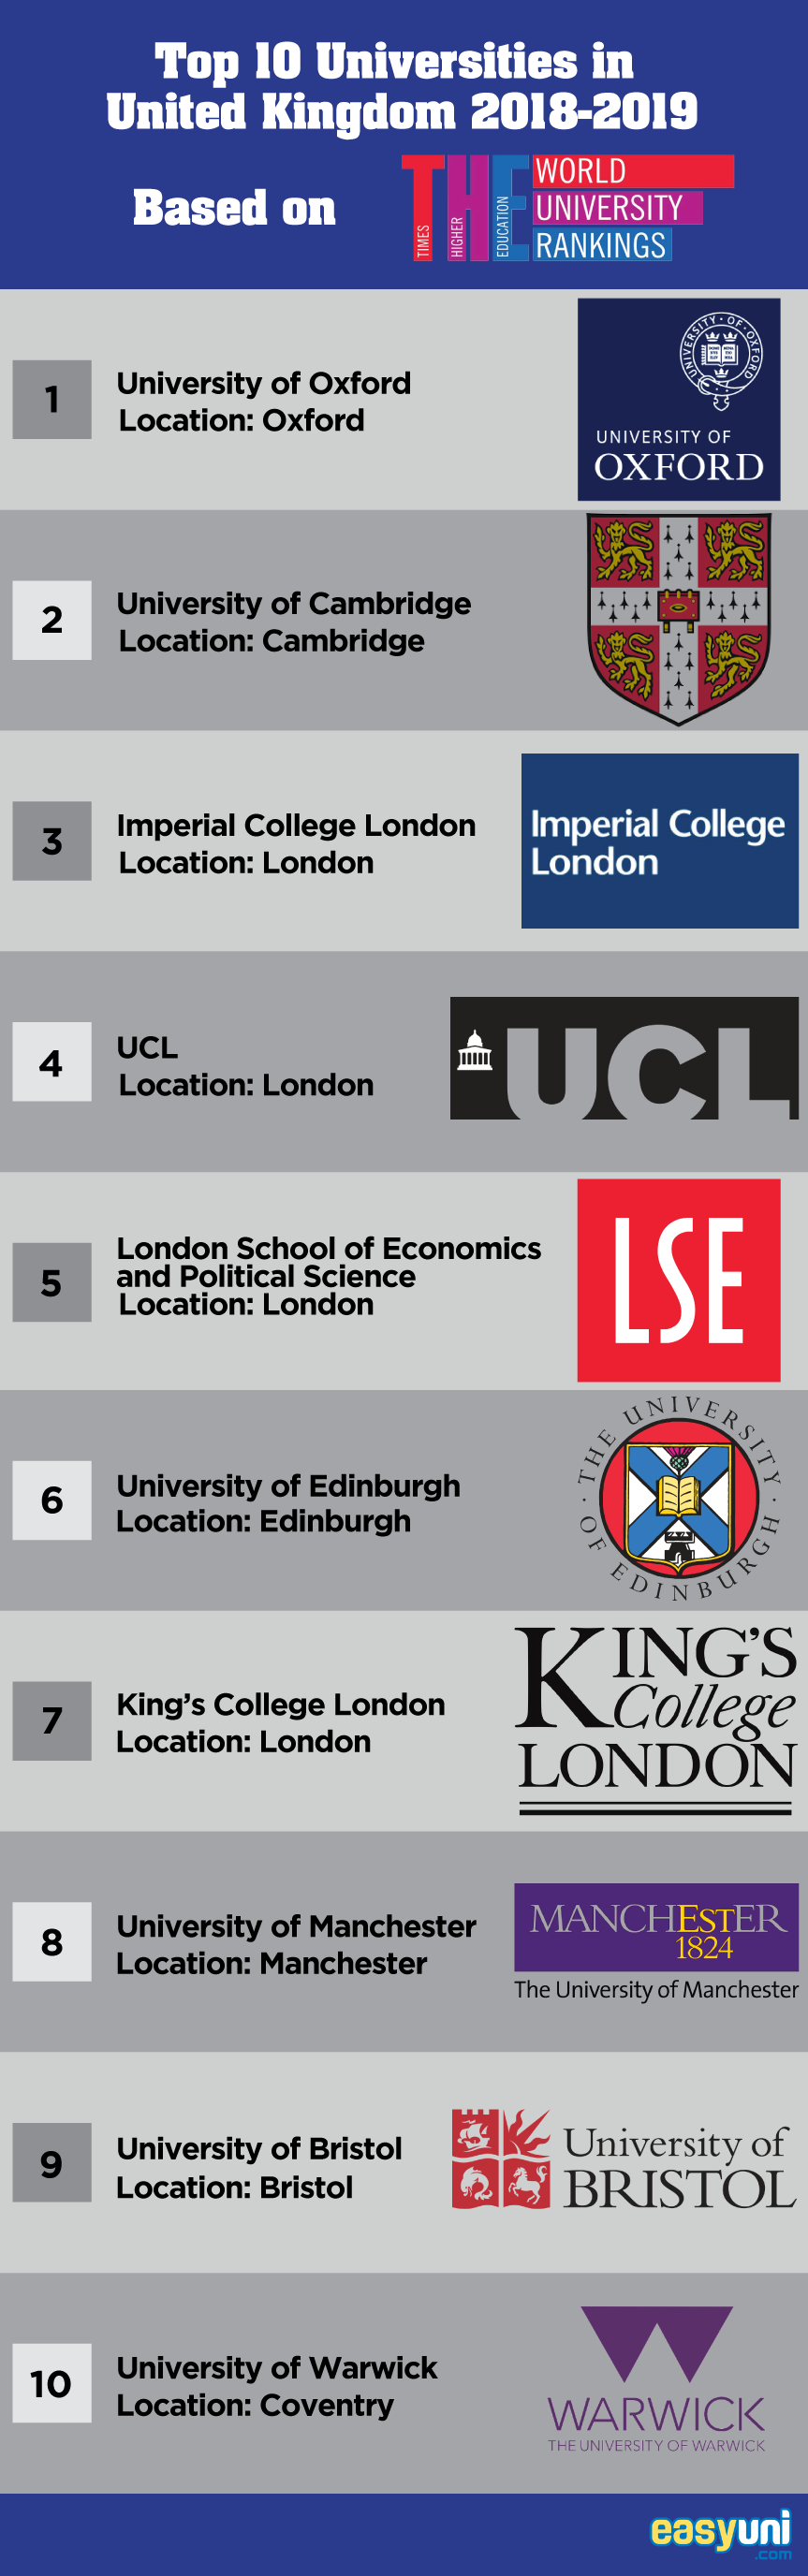 Top 10 Universities in United Kingdom 2019